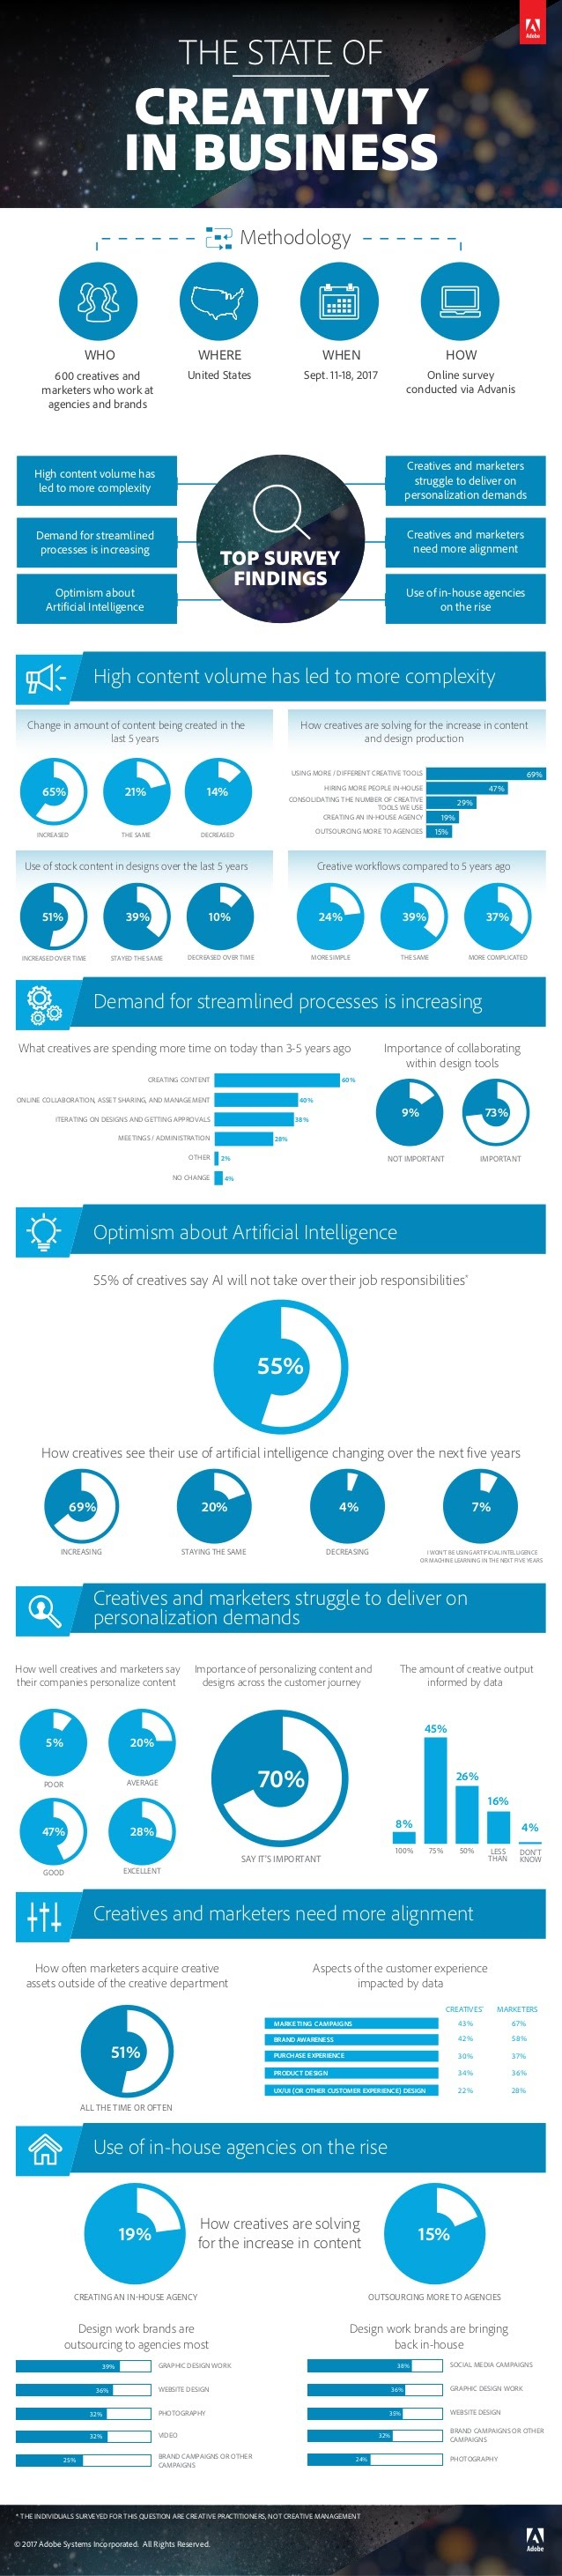 The Changing Landscape of Creativity in Business: Key Takeaways from Survey - #infographic